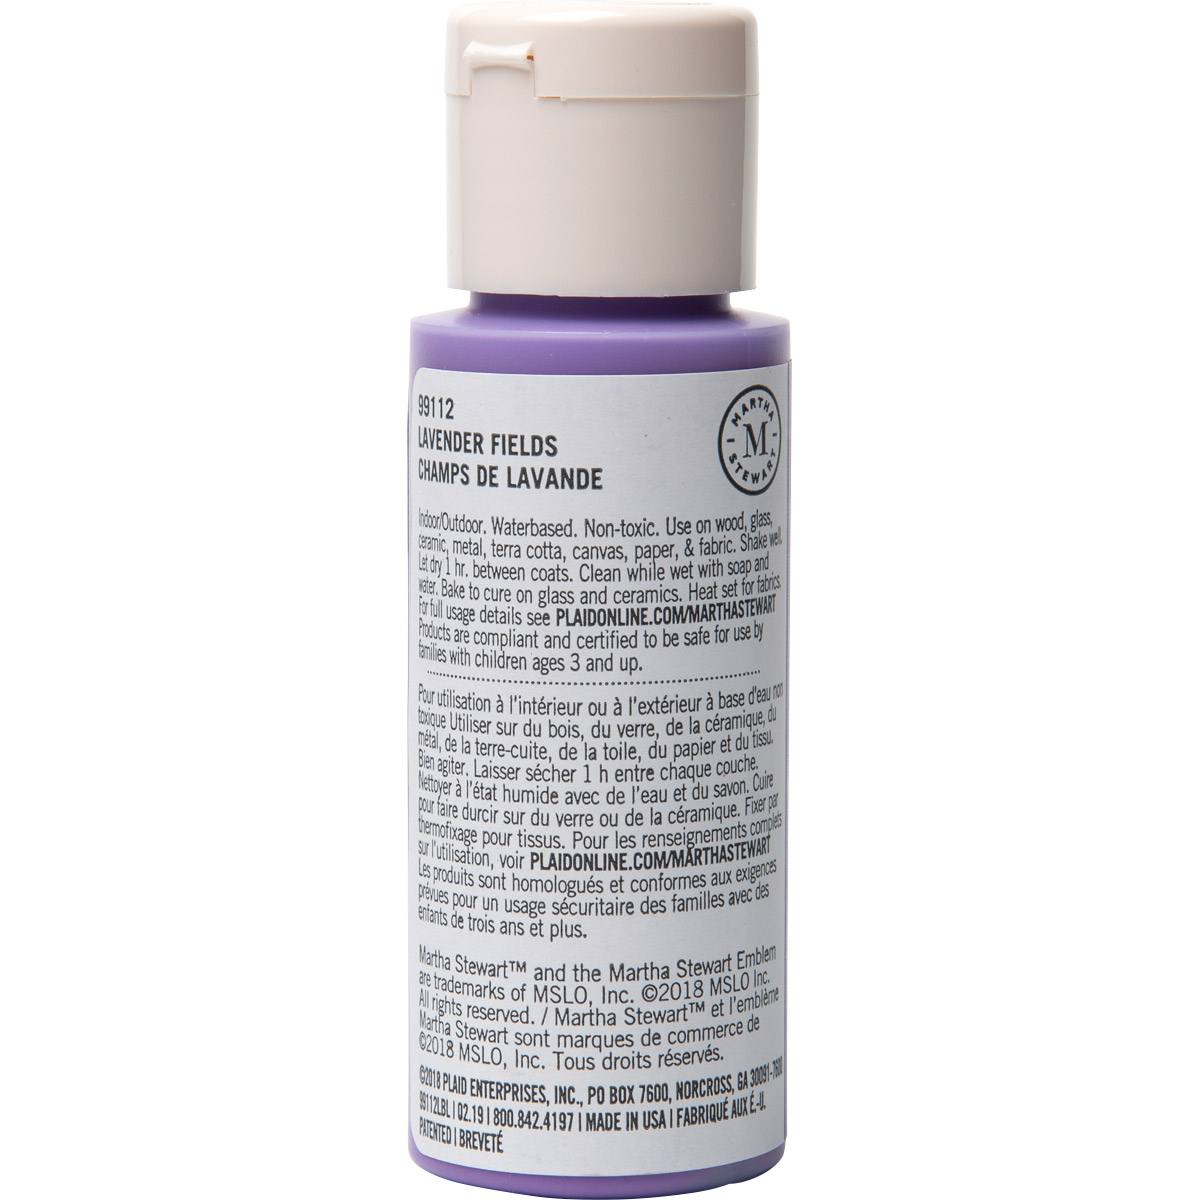 Martha Stewart ® Multi-Surface Satin Acrylic Craft Paint CPSIA - Lavender Fields, 2 oz. - 99112